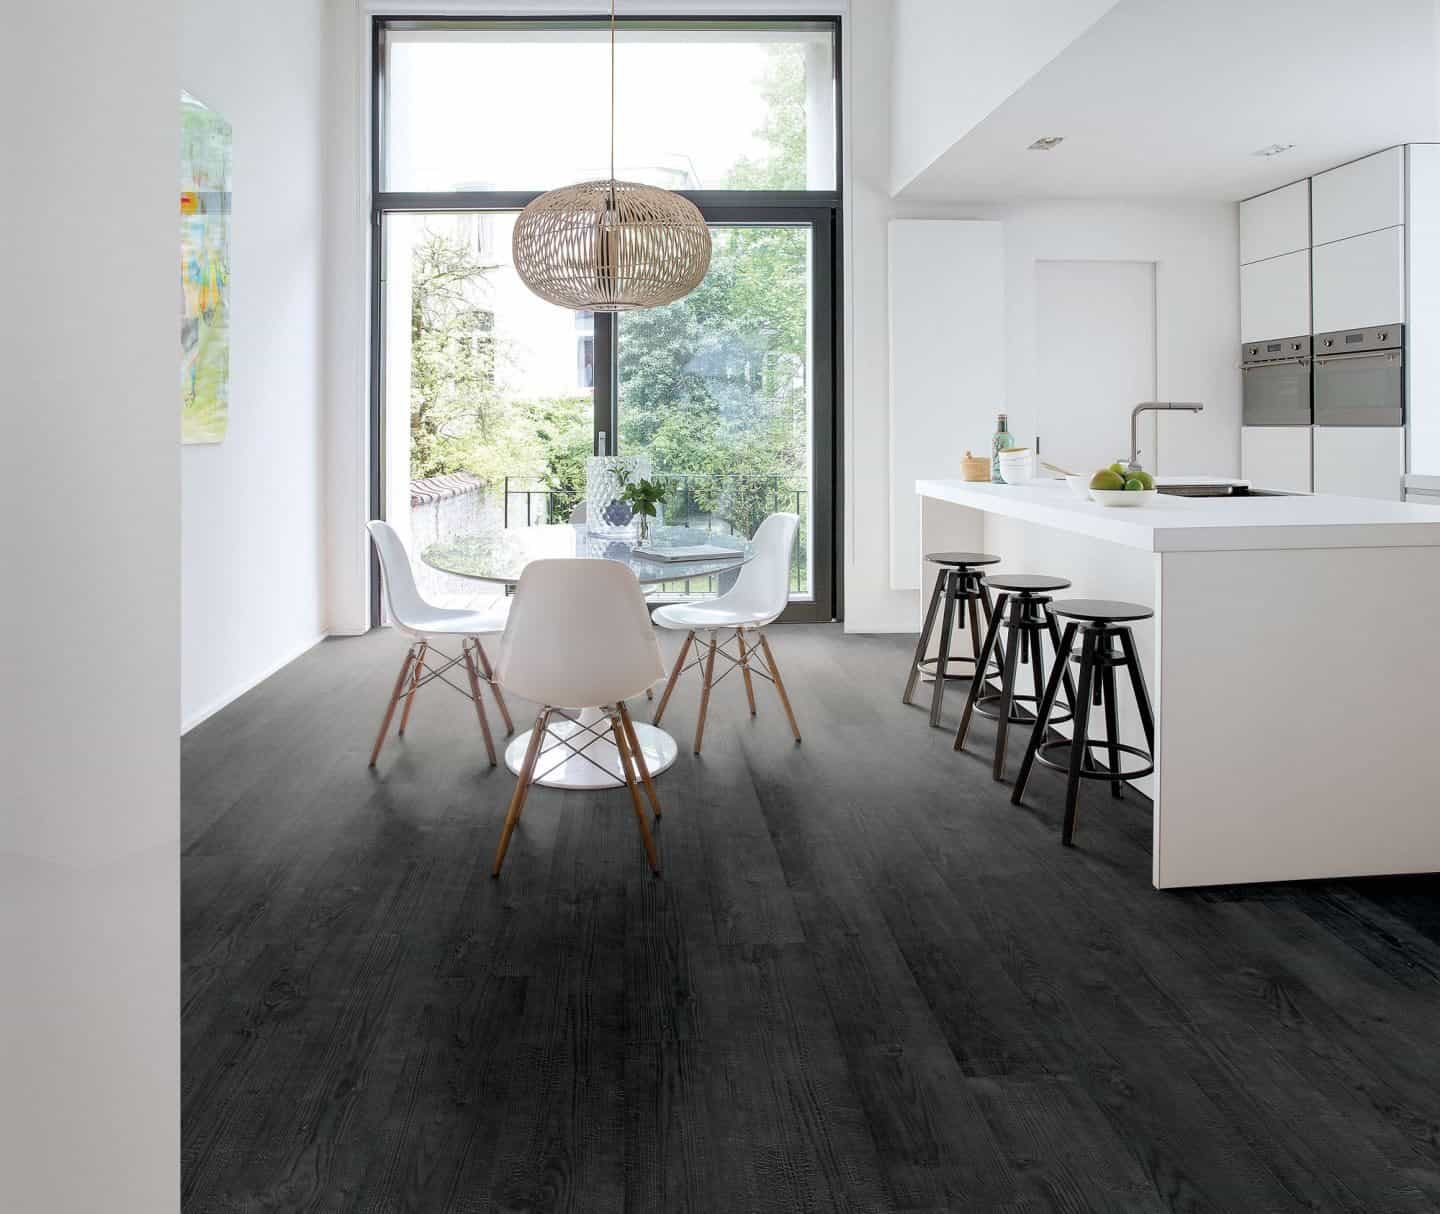 Flooring trends - quickstep flooring - black floor planks used in modern white kitchen